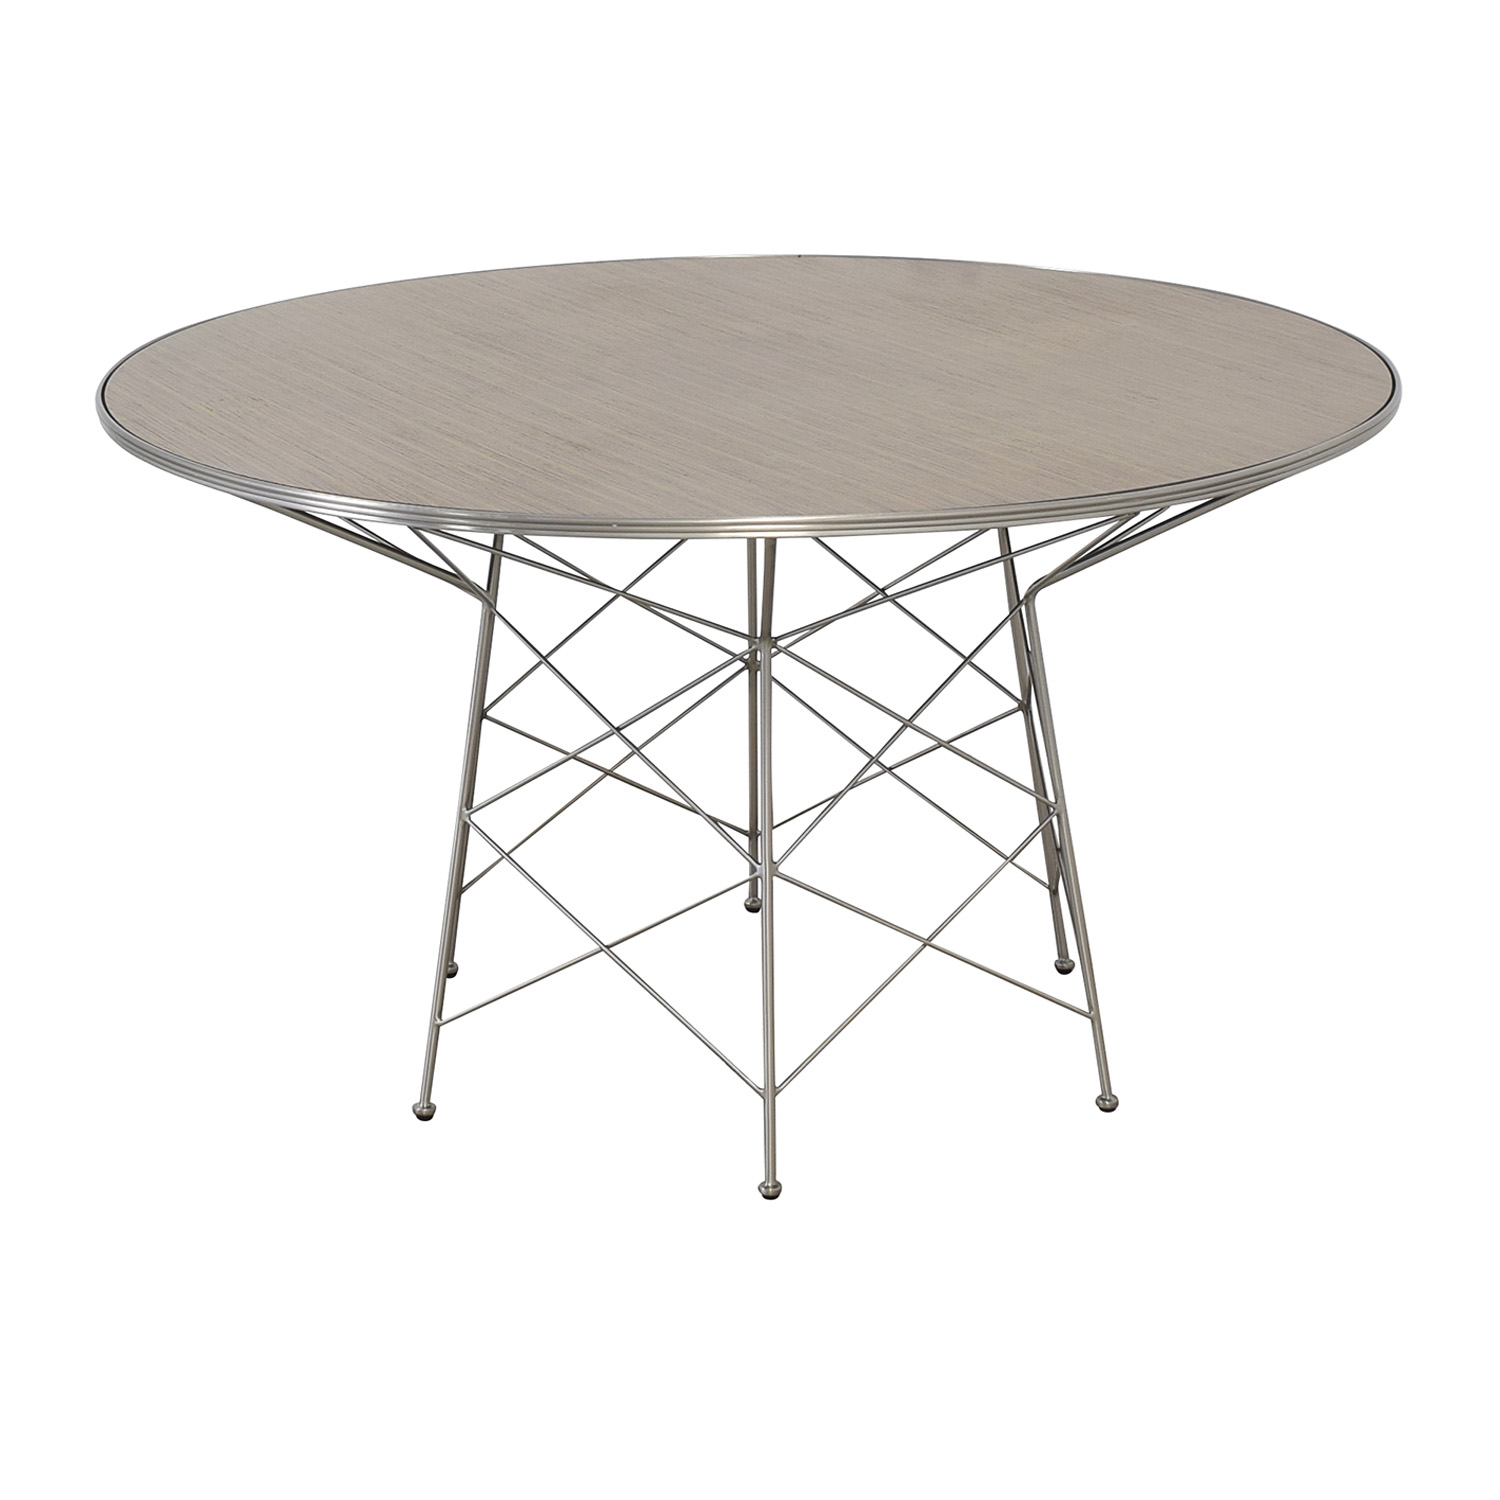 Caracole Caracole Modern Metro High Rise Dining Table nj